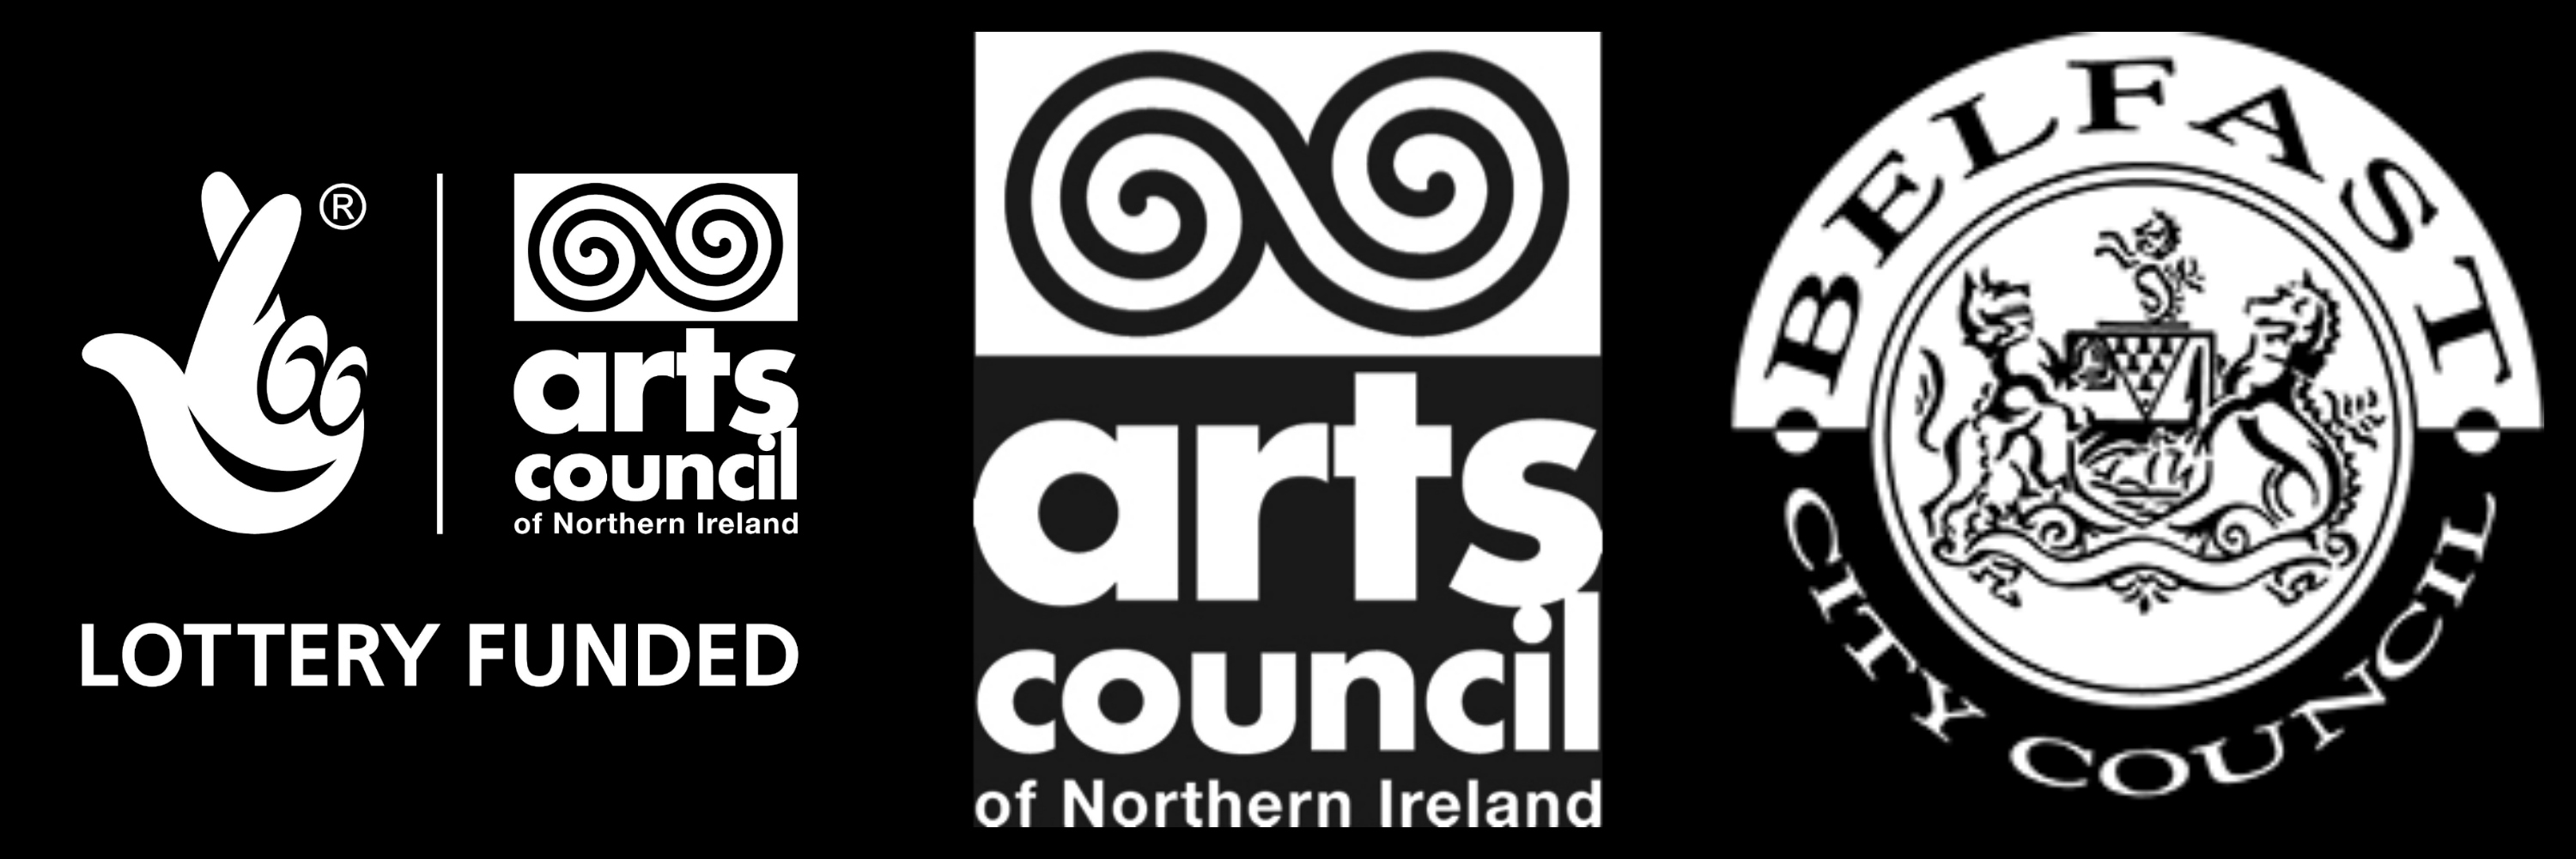 Arts Council of Northern Ireland, Belfast City Council and The Lottery Fund